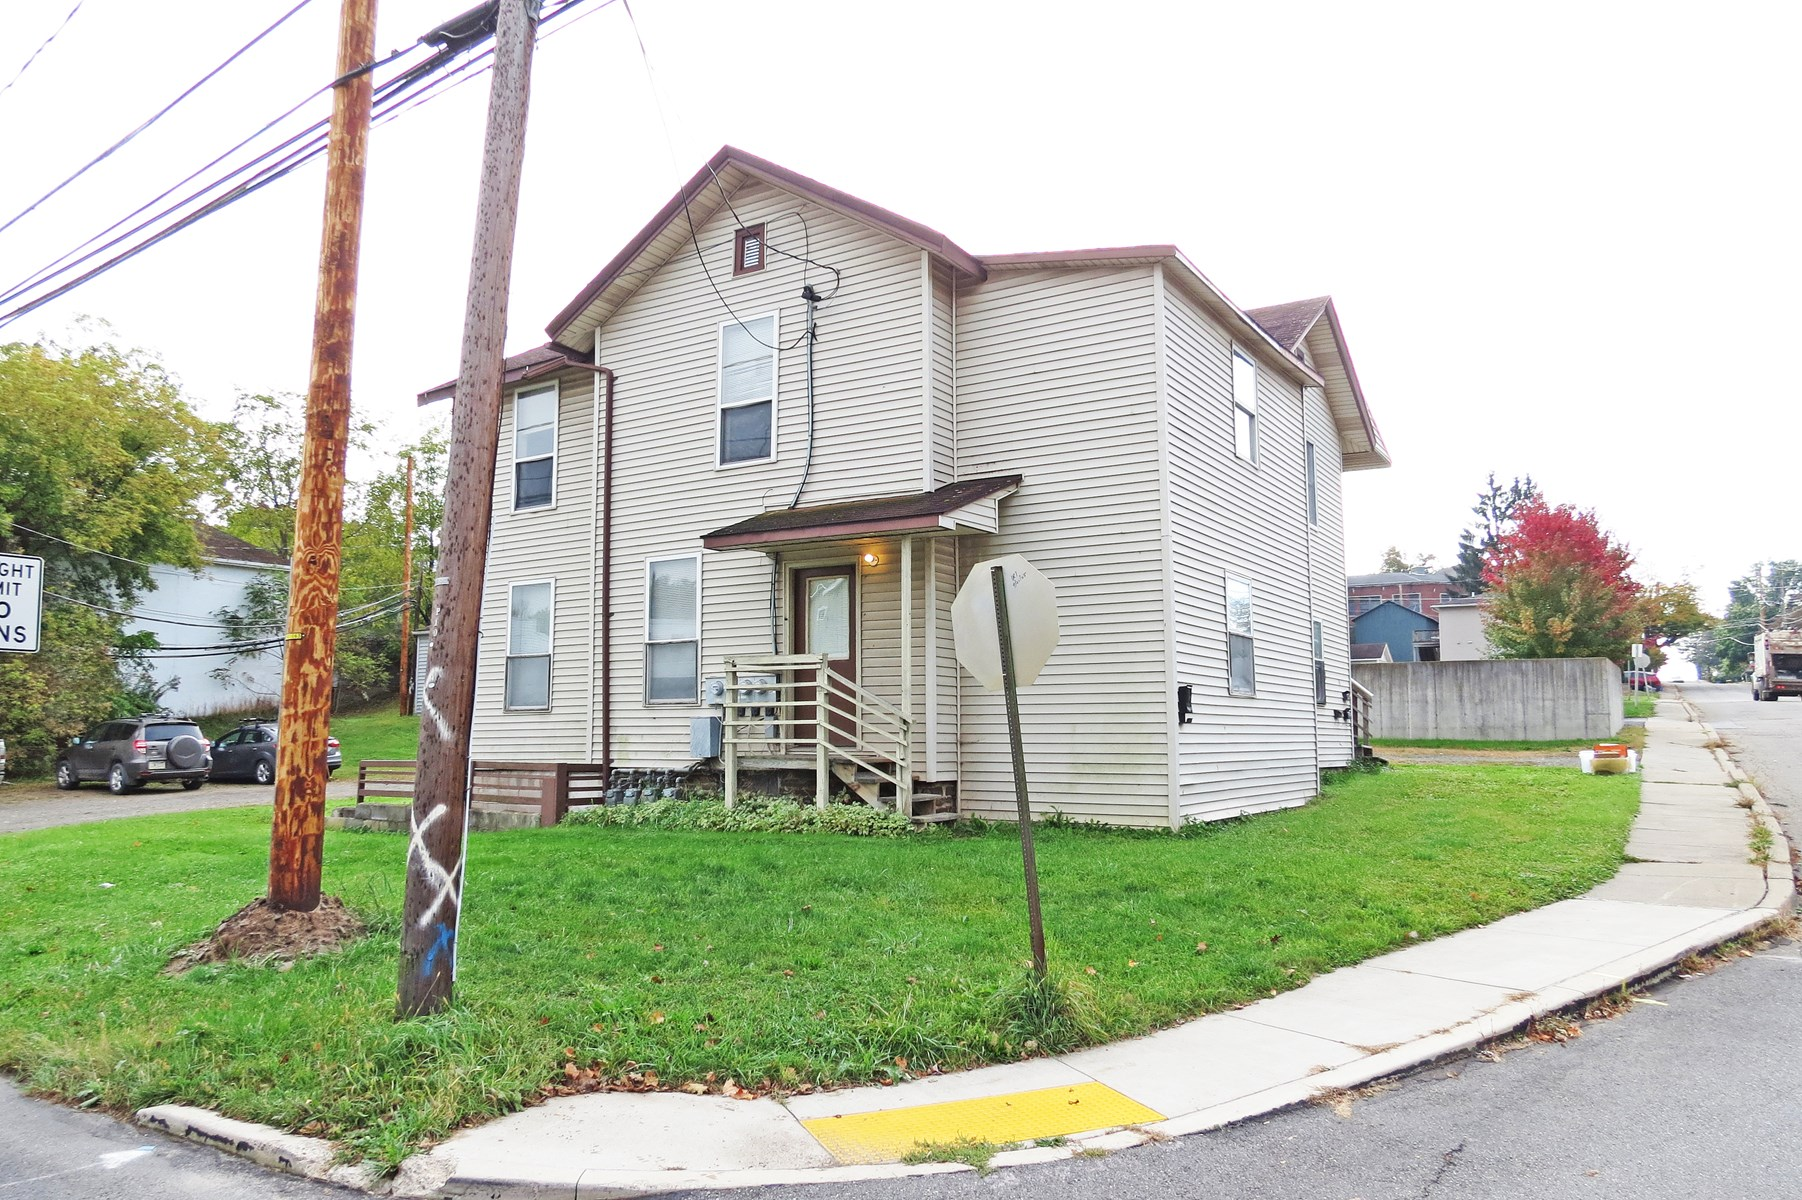 Seven Multi-Family Homes for Auction, Mansfield Pennsylvania